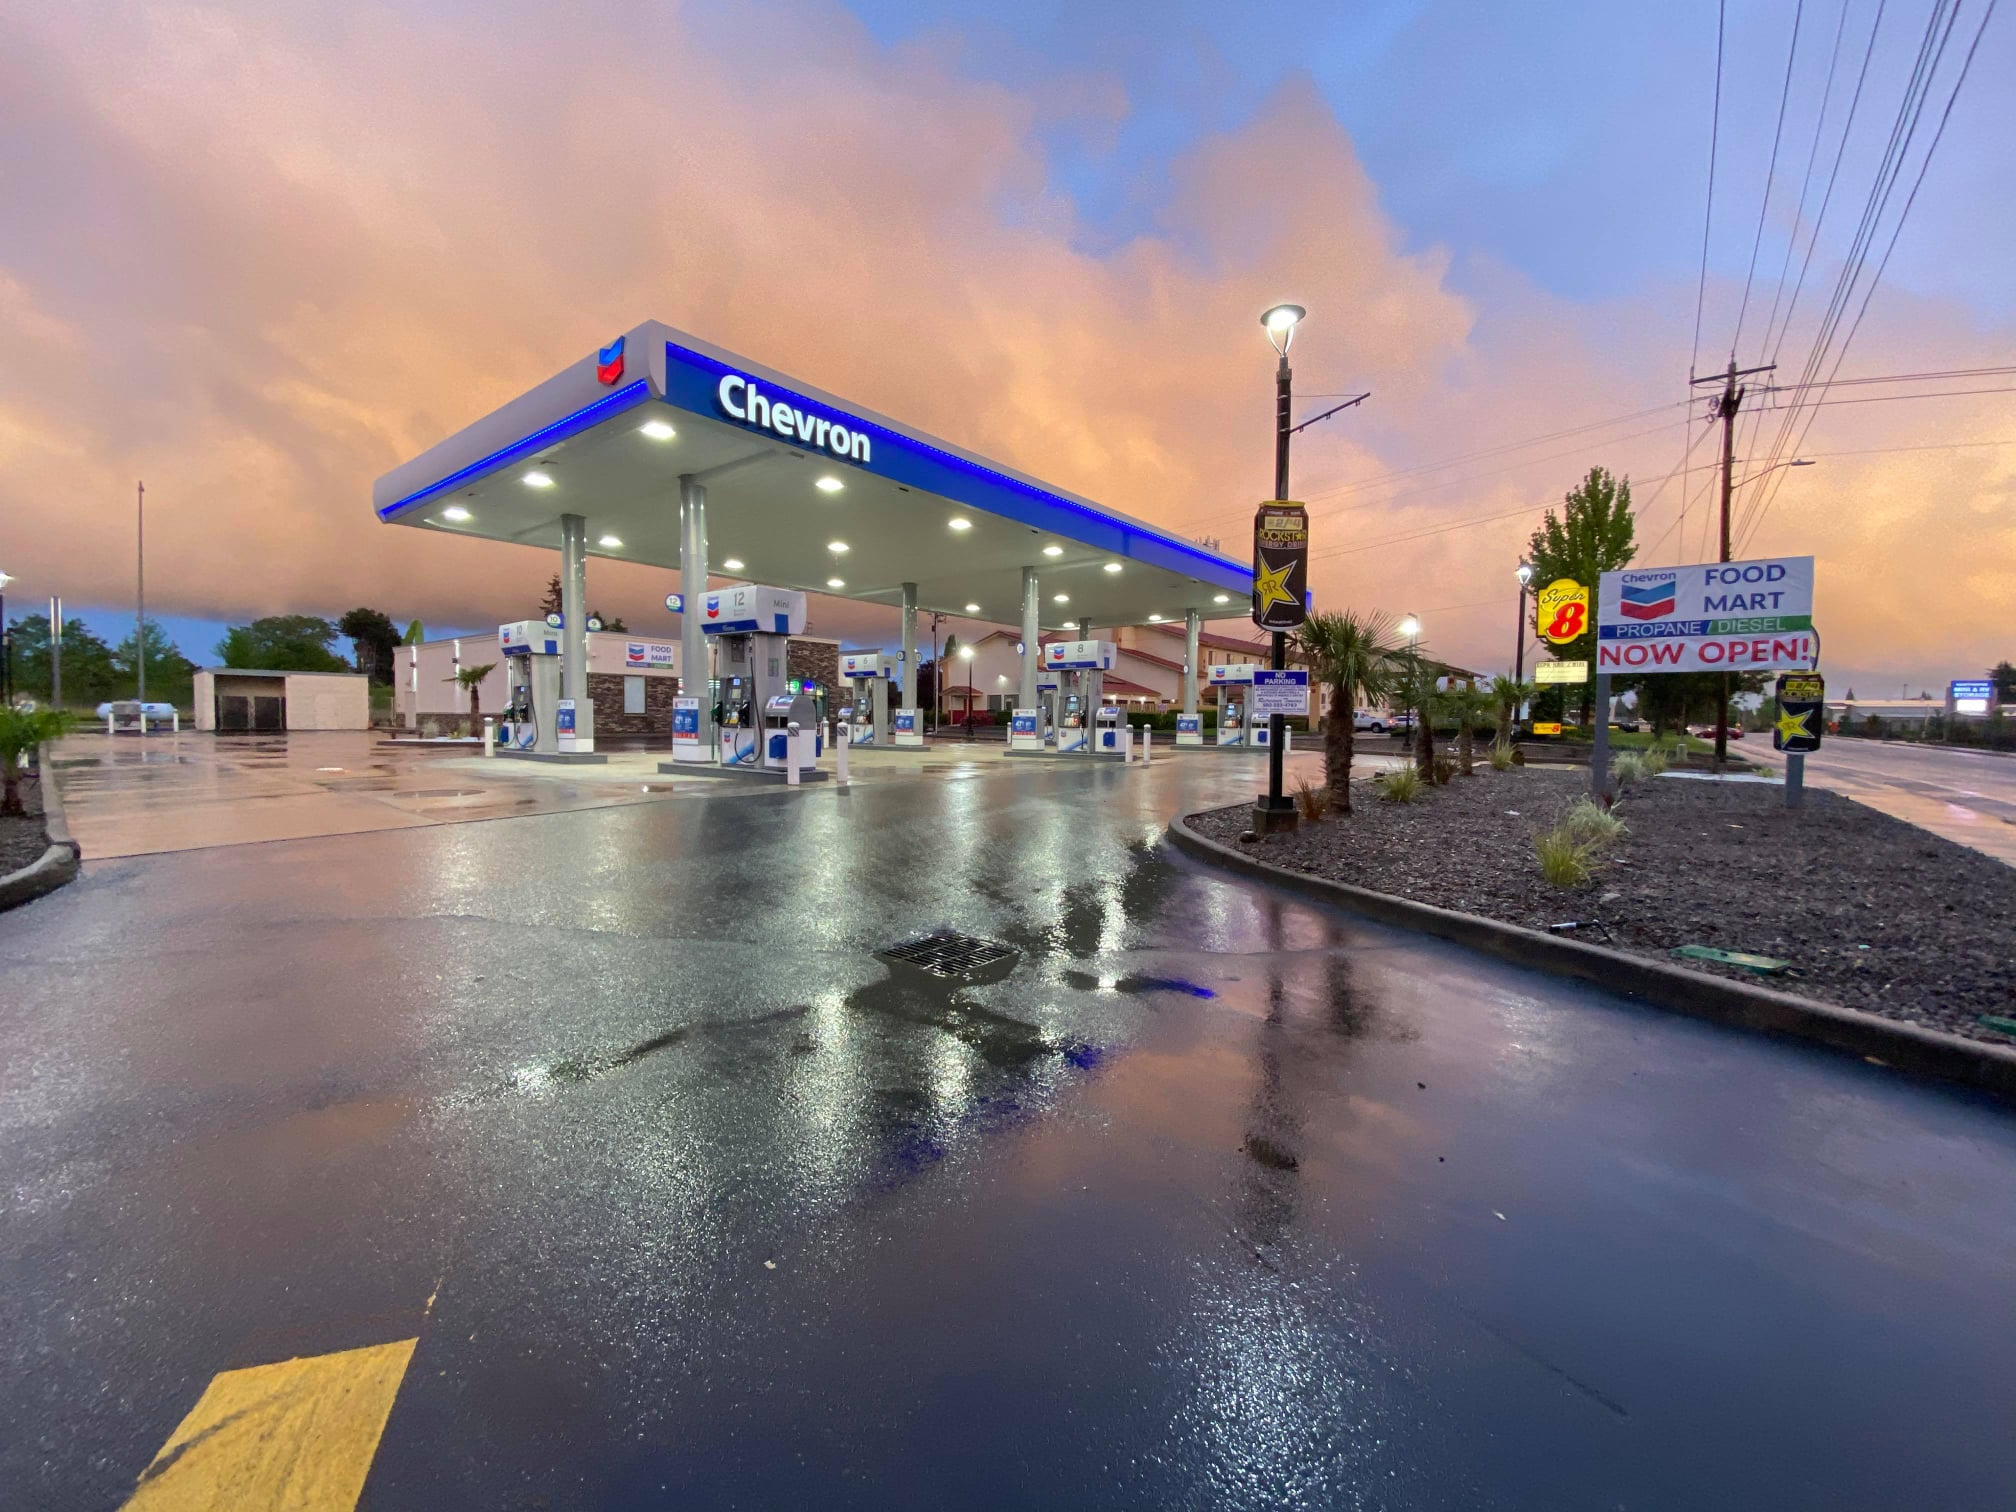 Chevron Salem Lets Drivers Pay With Mobile App At The Pump During Covid Pandemic